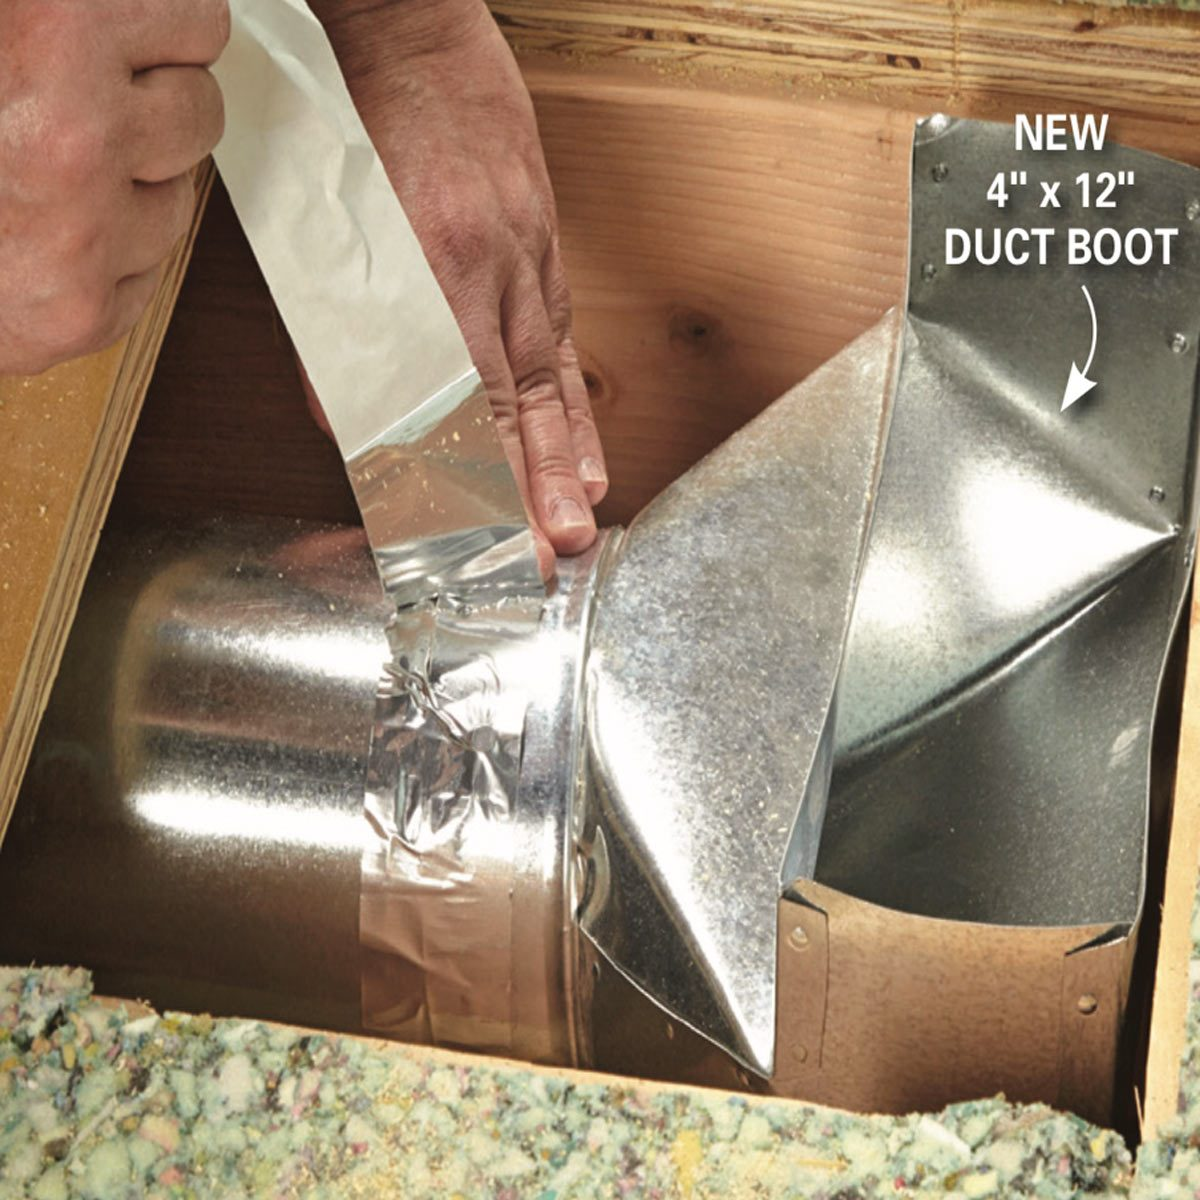 How To Install A Duct Booster Fan Family Handyman The Family